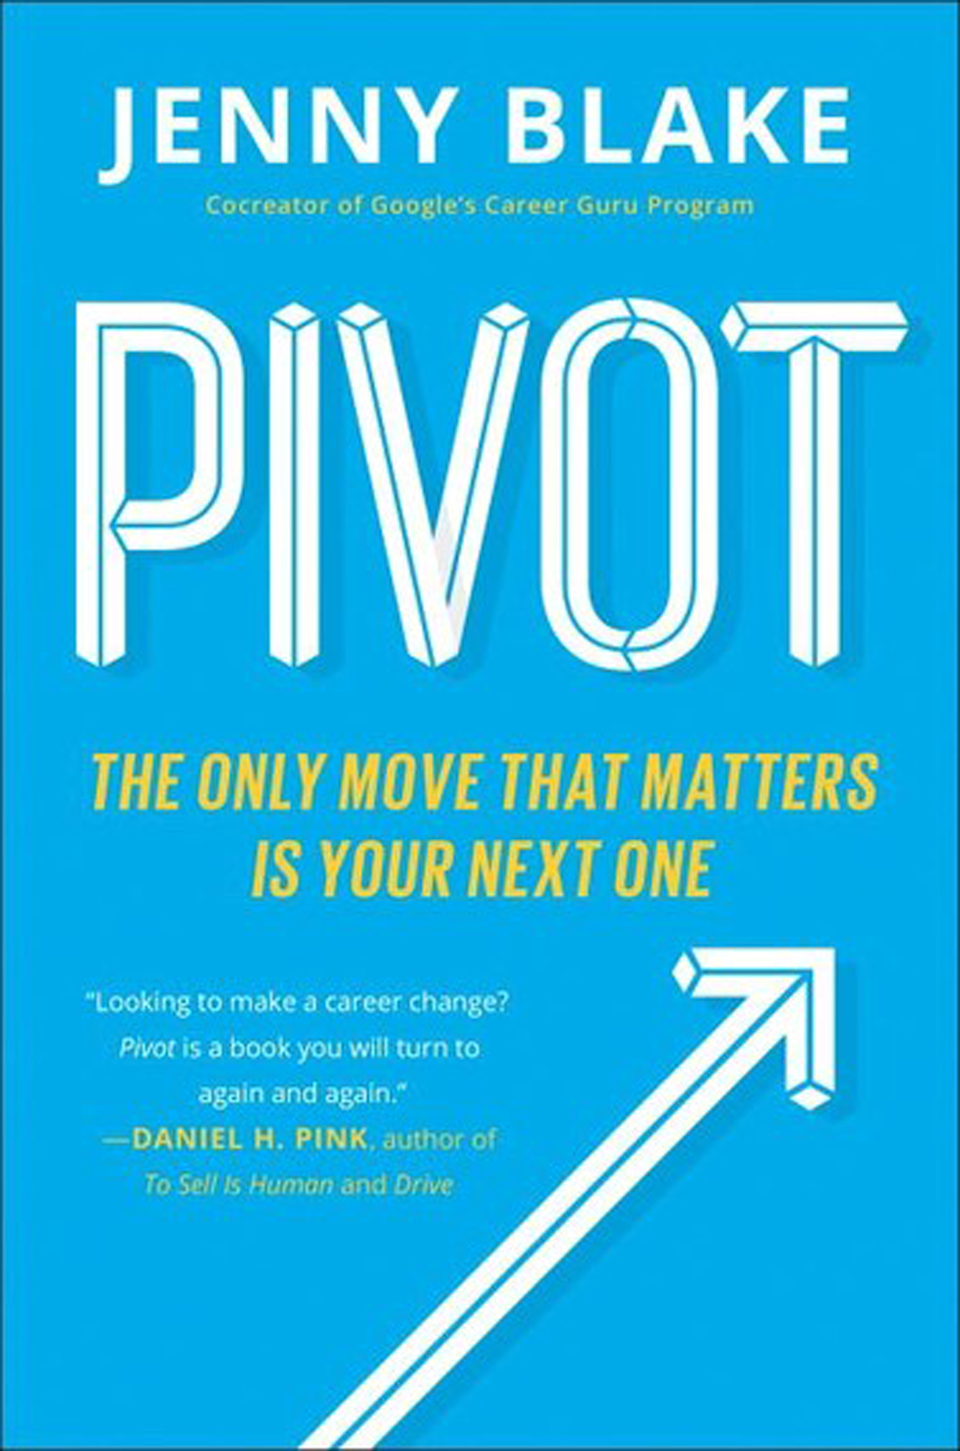 """<p><strong><em>Pivot</em></strong></p><p>By Jenny Blake</p><p>If you're stuck in a career rut and want to make some changes in 2017, <em><a href=""""http://www.refinery29.uk/your-next-career-move-pivot"""" rel=""""nofollow noopener"""" target=""""_blank"""" data-ylk=""""slk:Pivot"""" class=""""link rapid-noclick-resp"""">Pivot</a></em> is for you. Written by careers strategist and the co-creator of Google's Career Guru Program, Jenny Blake, the book removes the feelings of confusion and panic that often come with trying something new. She teaches you how to move from one career to another in our rapidly evolving economy. Refreshingly, Blake's philosophy is all about building on your existing strengths rather than the need to become a whole new person. Result!</p>"""